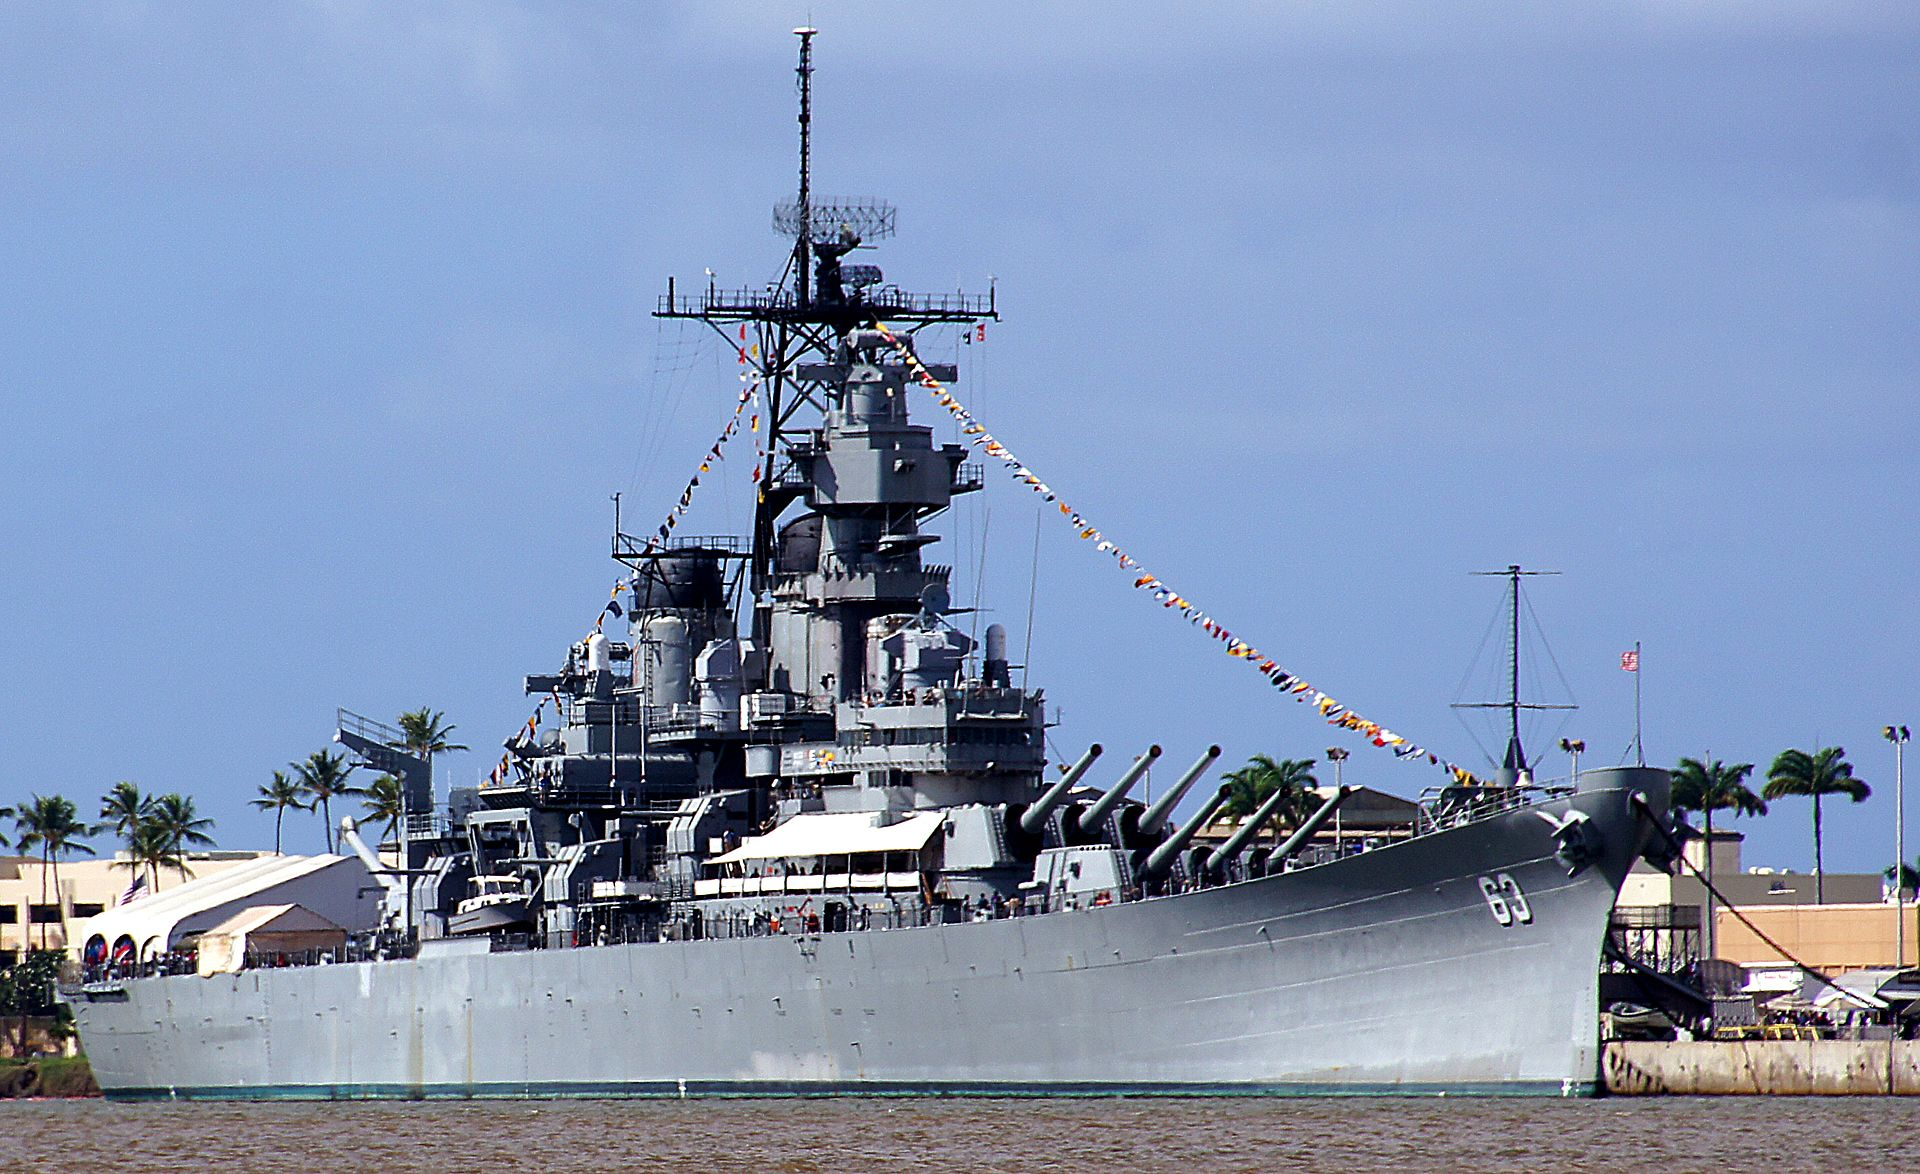 Us Navy S Ultimate Dream Weapon That Russia Feared